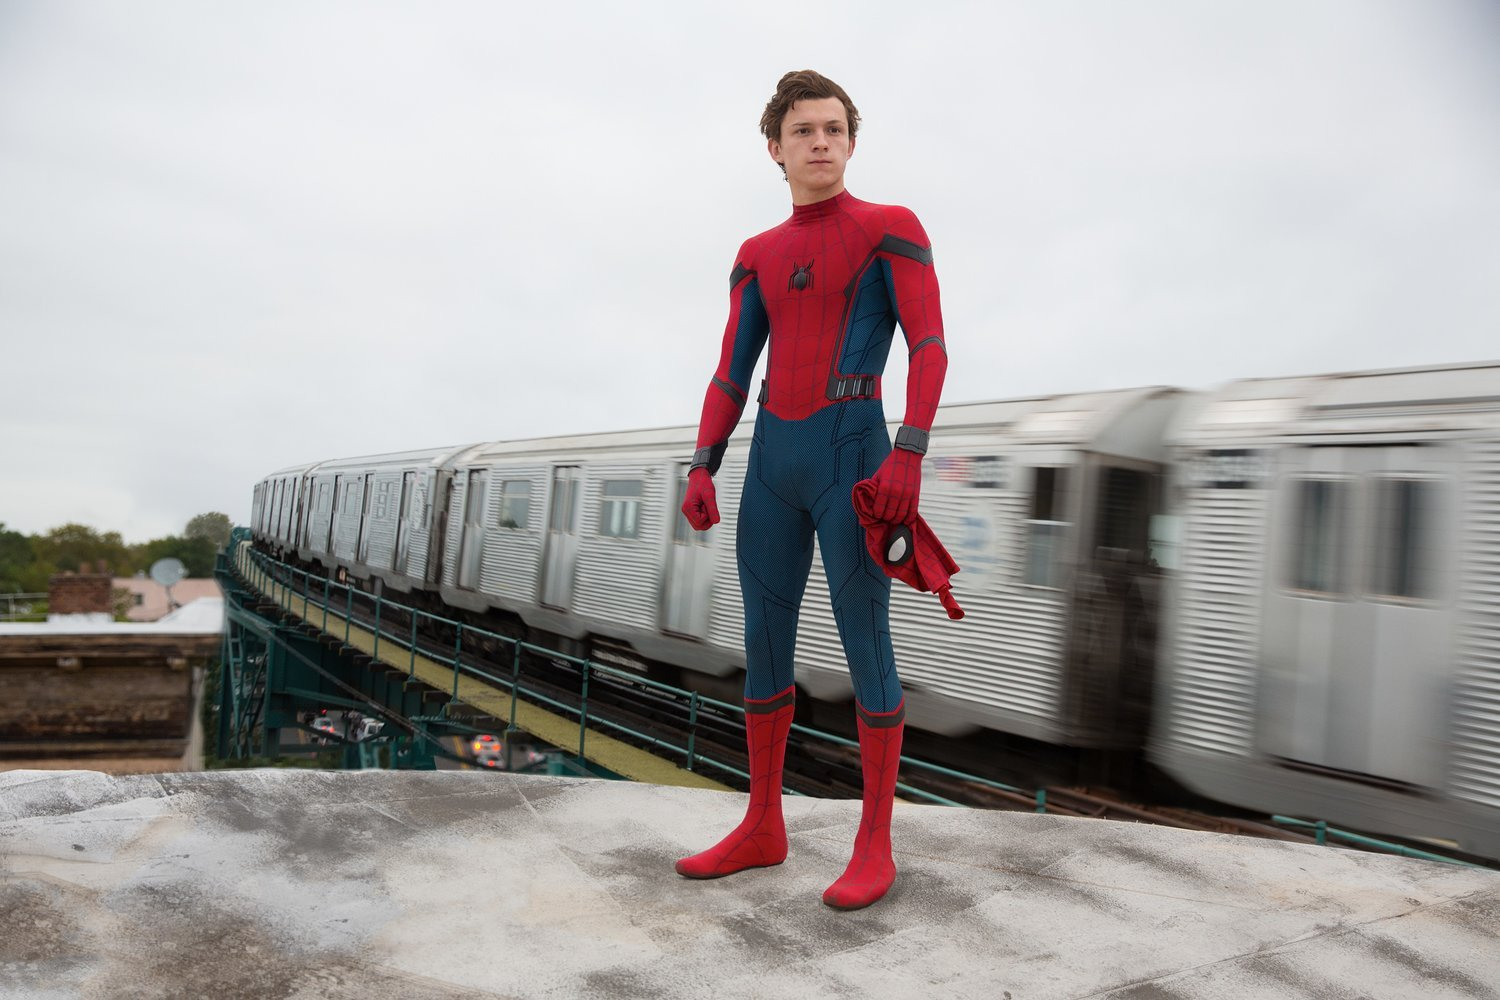 Tom Holland takes the reigns as Spider-Man in Homecoming